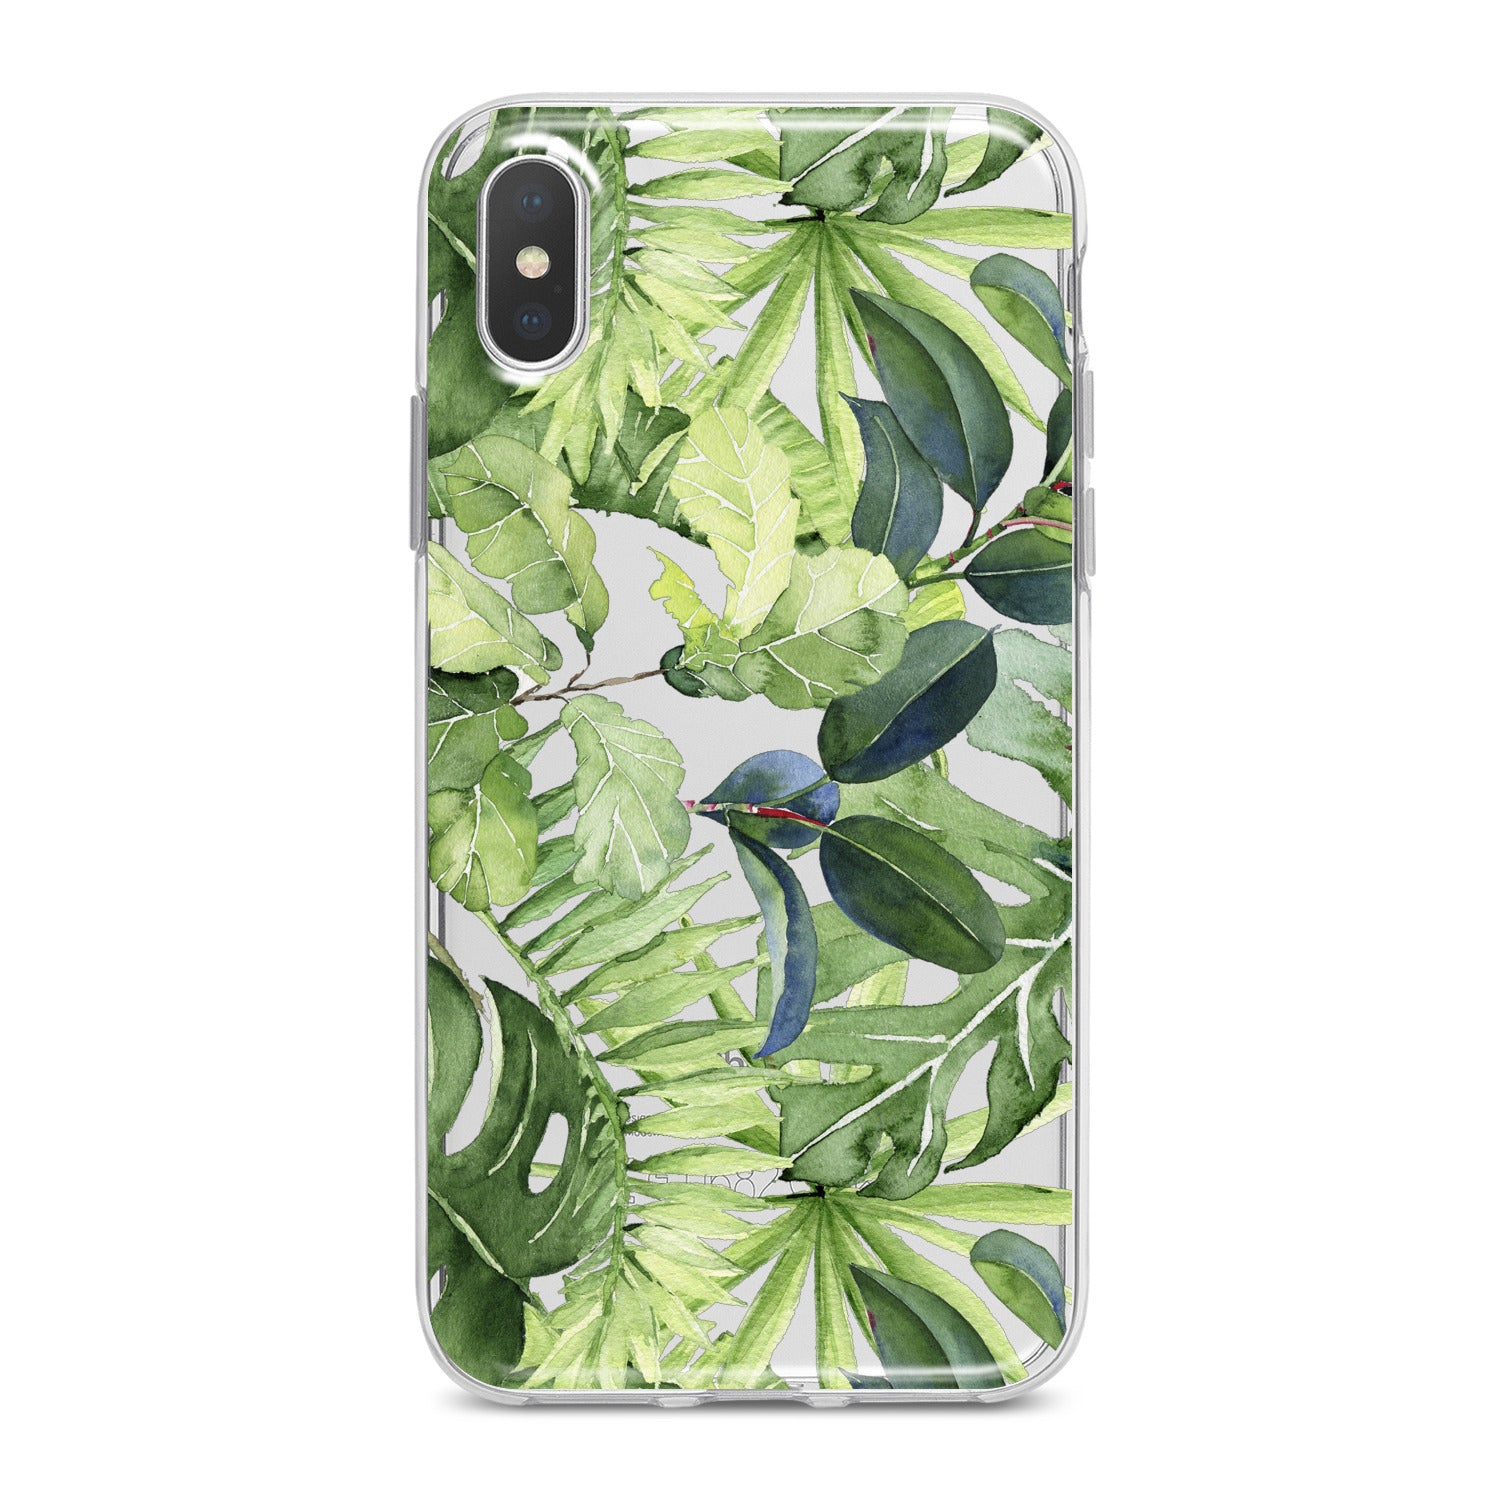 Lex Altern Abstract Green Leaves Phone Case for your iPhone & Android phone.